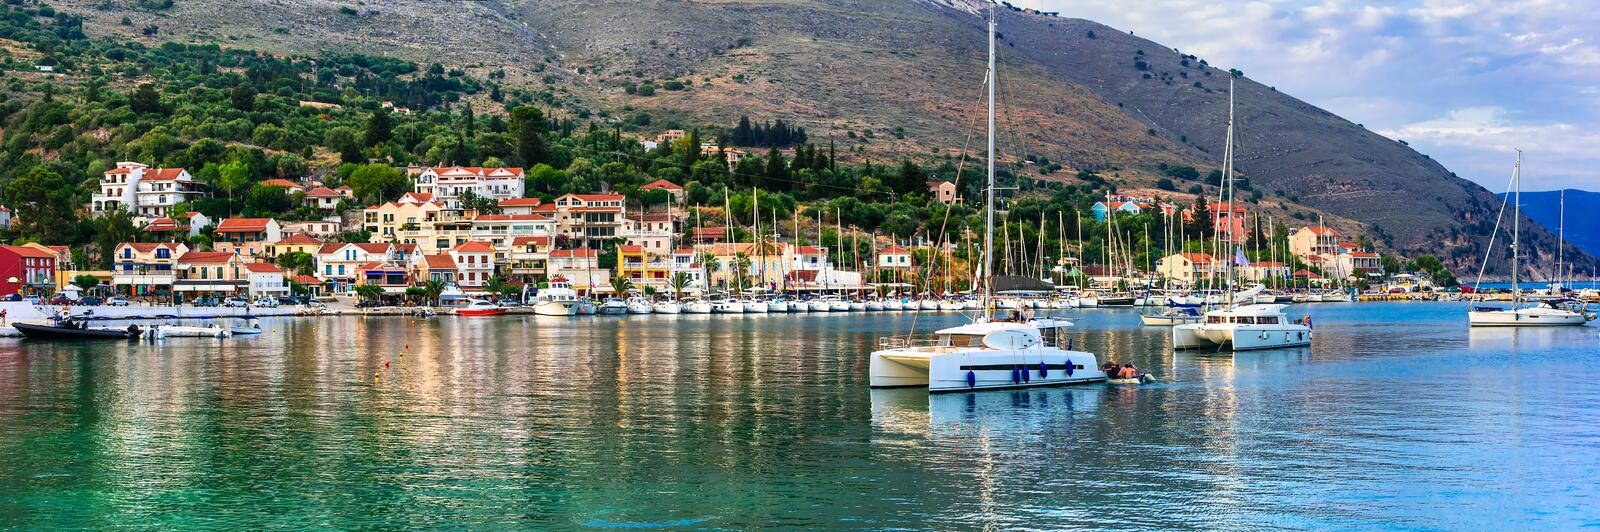 Beautiful places of Greece, Ionian Island Kefalonia. picturesque royalty free stock images